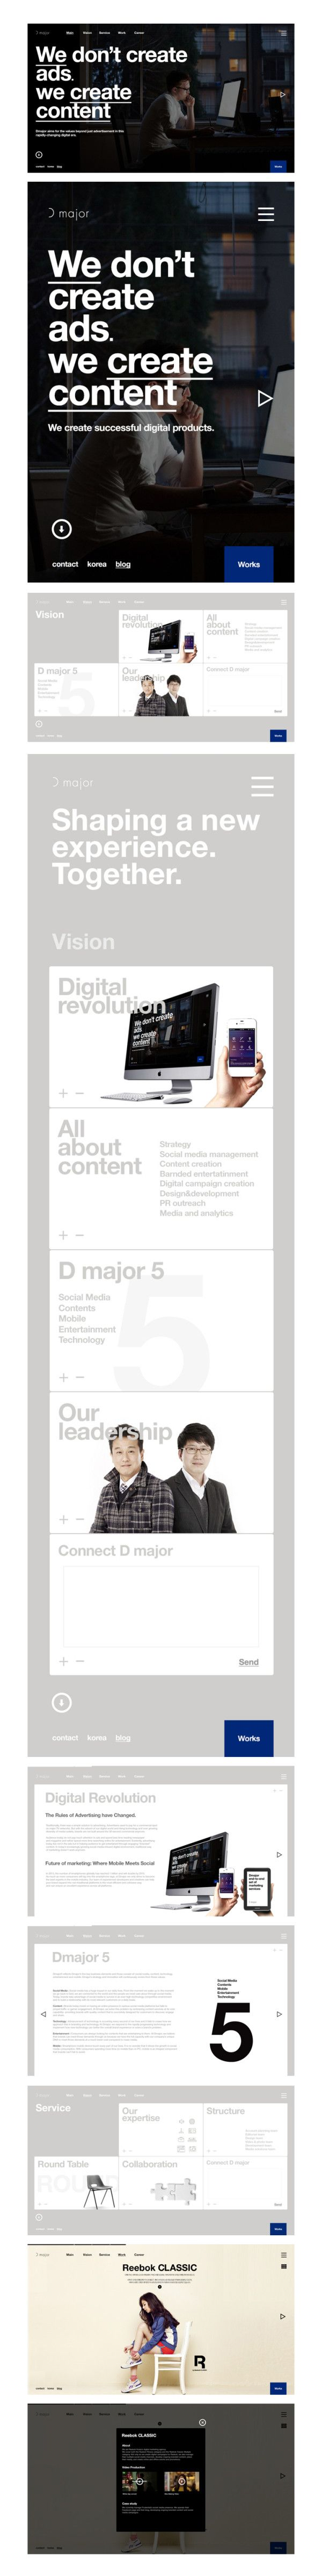 #website from Bory Kim #Twitpic #webdesign #website #responsive